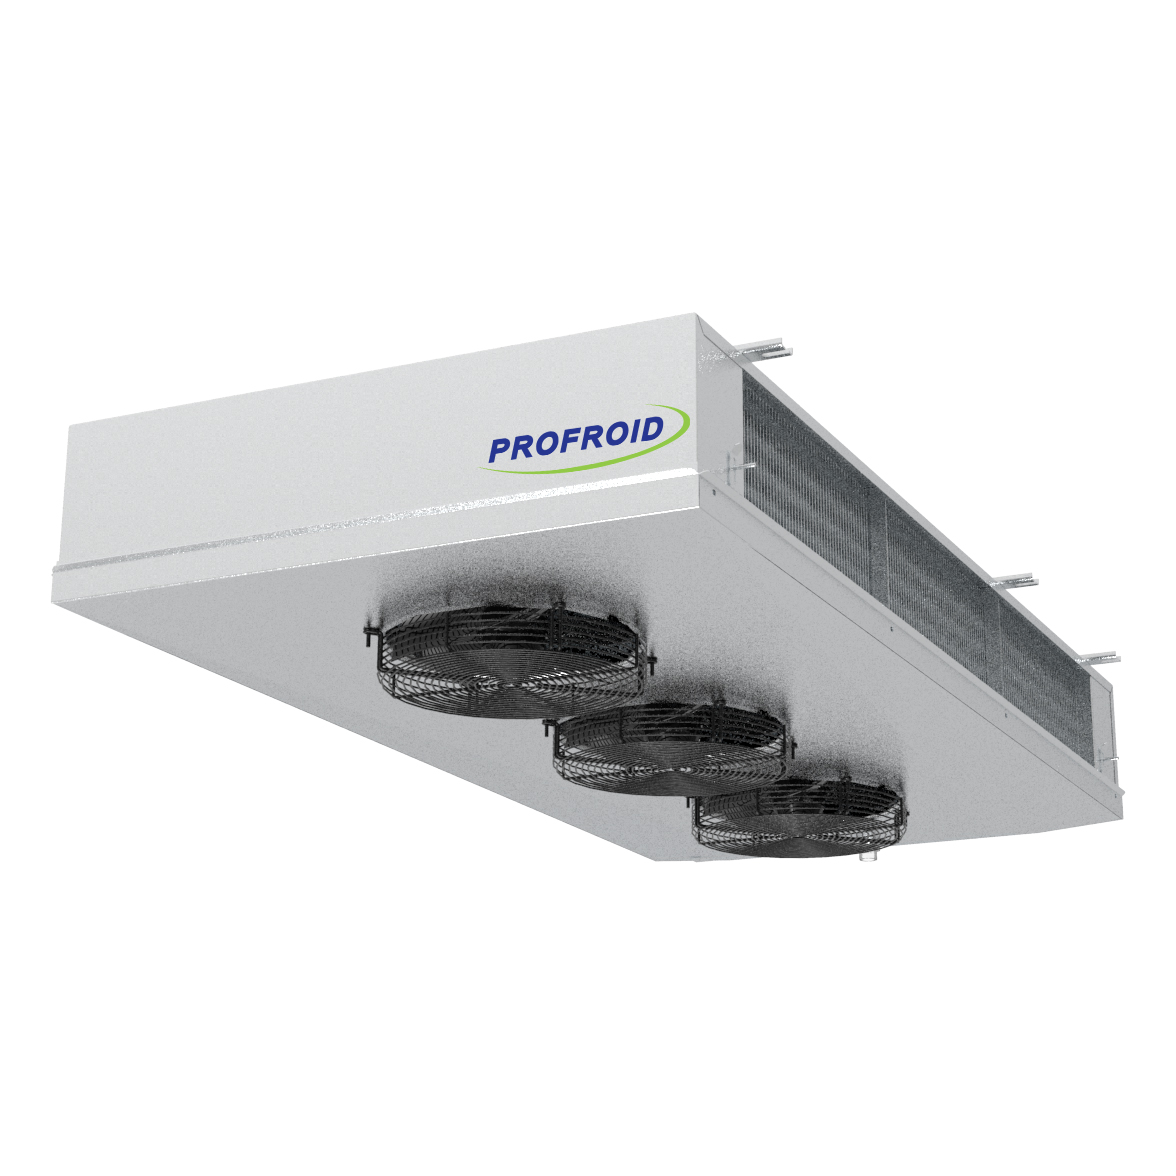 Profroid-Duo-31-35-air-cooler